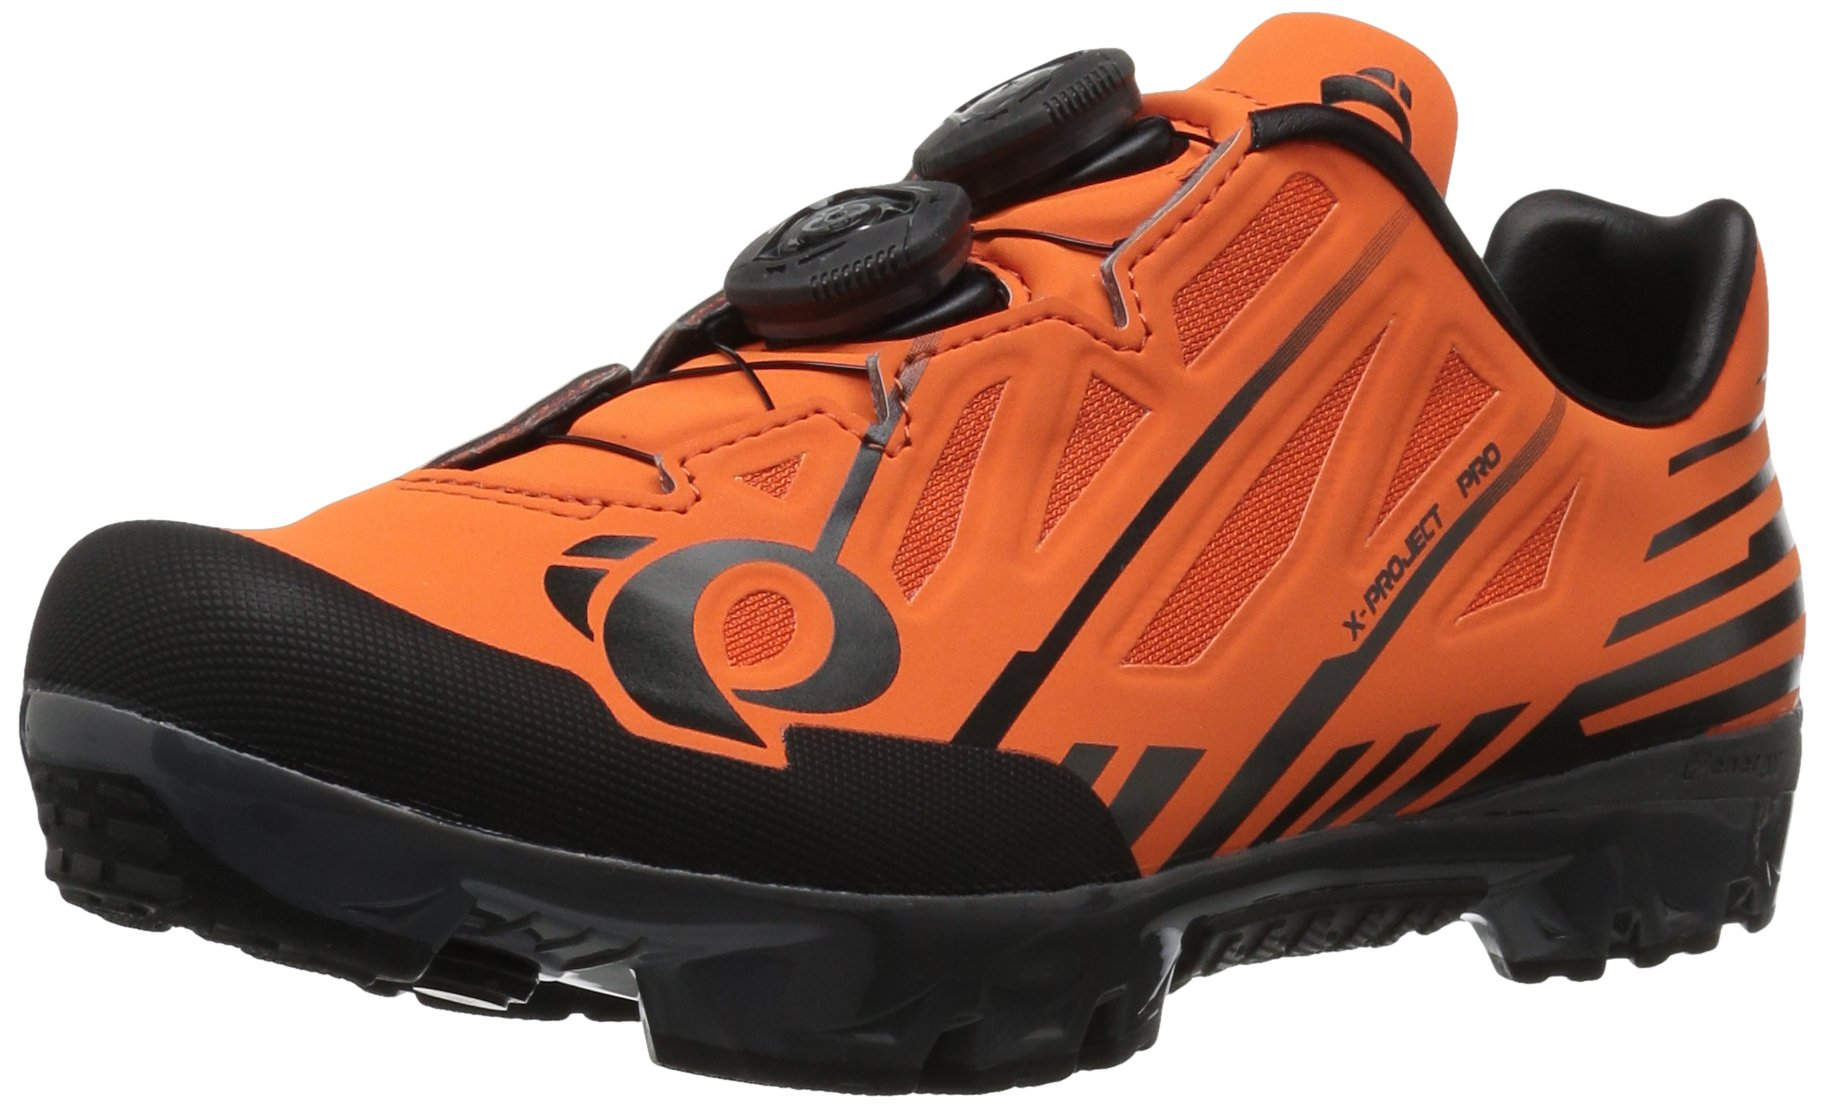 Pearl Izumi x-Project Pro Cycling-Footwear, Screaming Orange/Black, 45 EU/10.8 D US